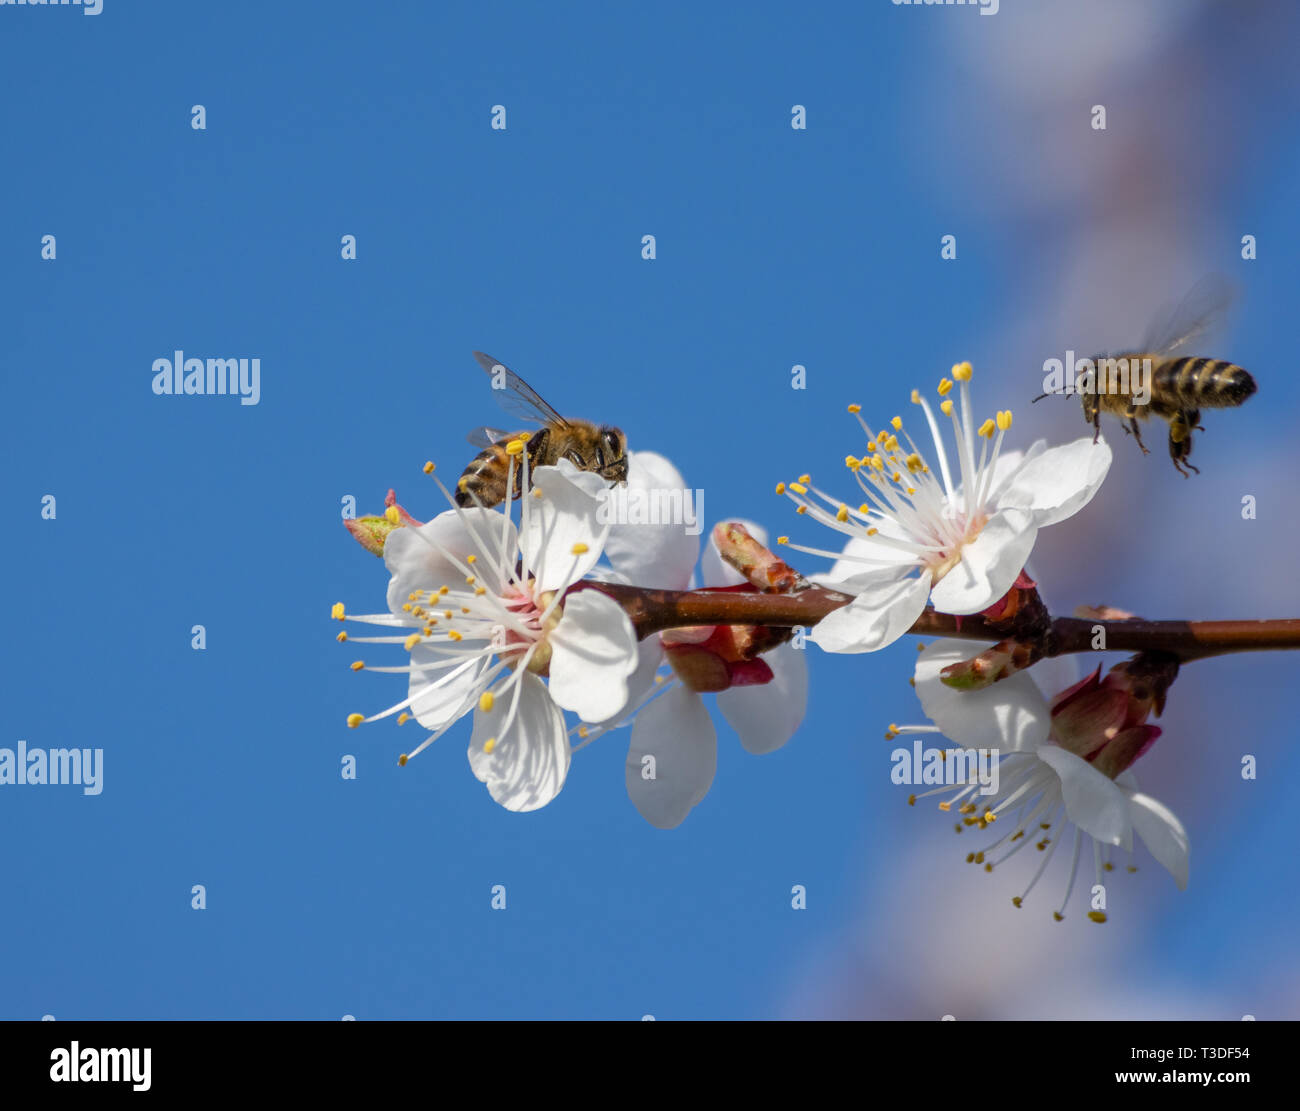 two bees looking for nectar on blossoms of an apricot tree - Stock Image